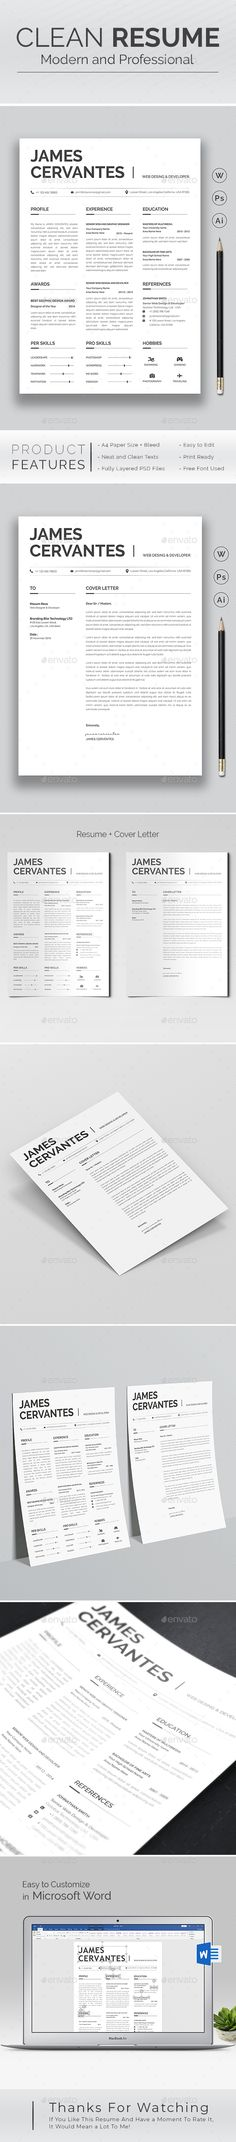 Resume 3014 best Resume Templates images on